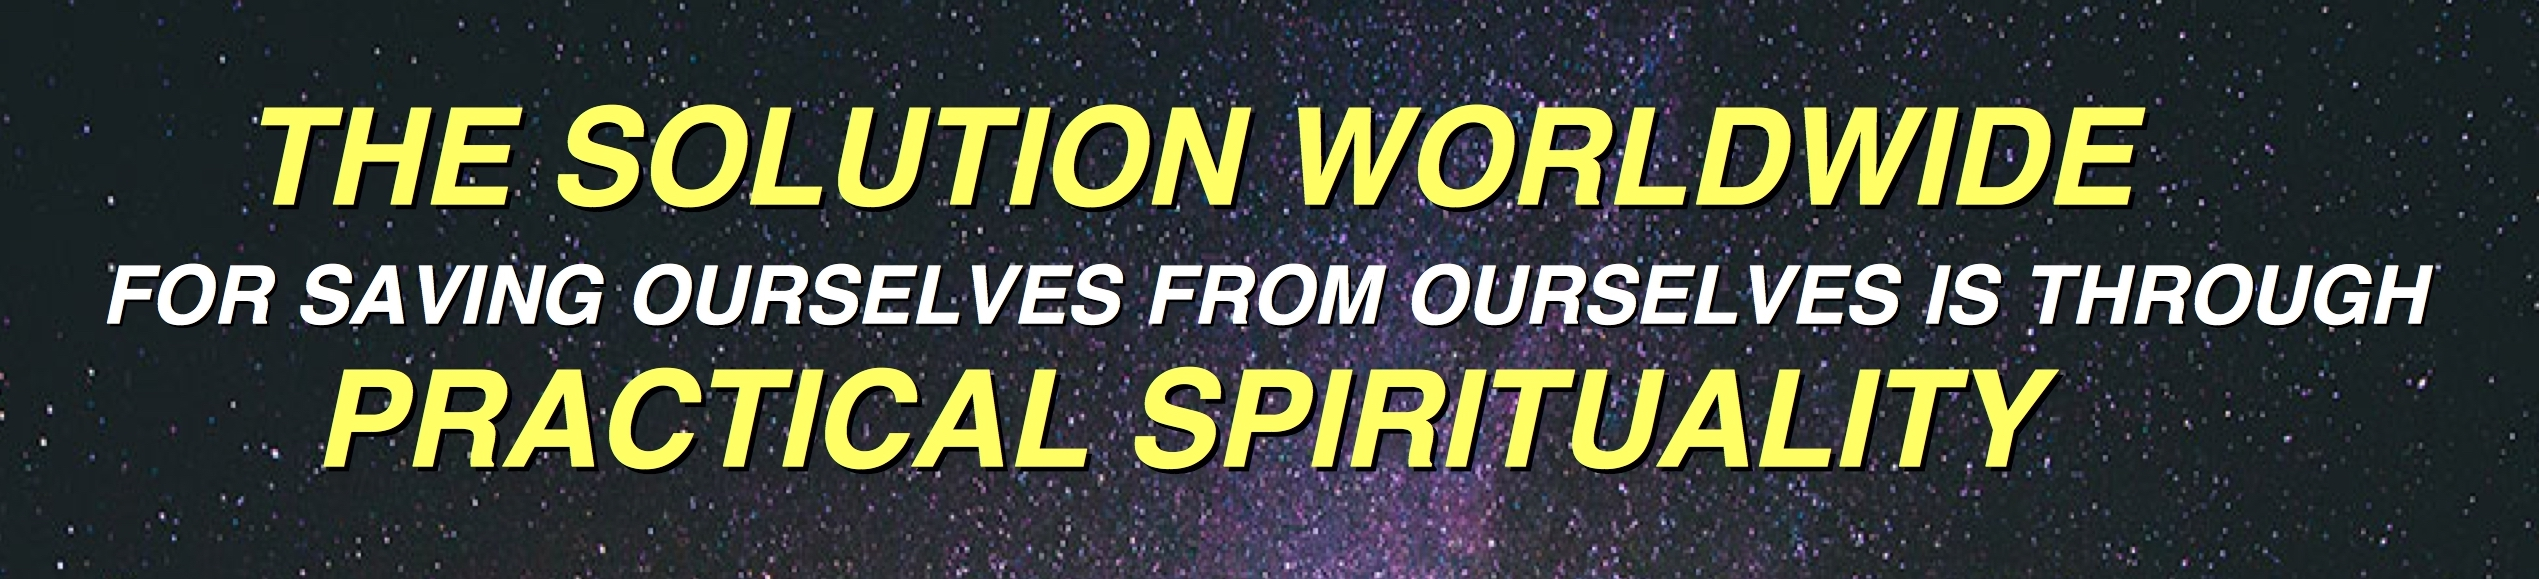 TOP BANNER THE WORLDWIDE SOLUTION IS PRACTICAL SPIRITUALITY